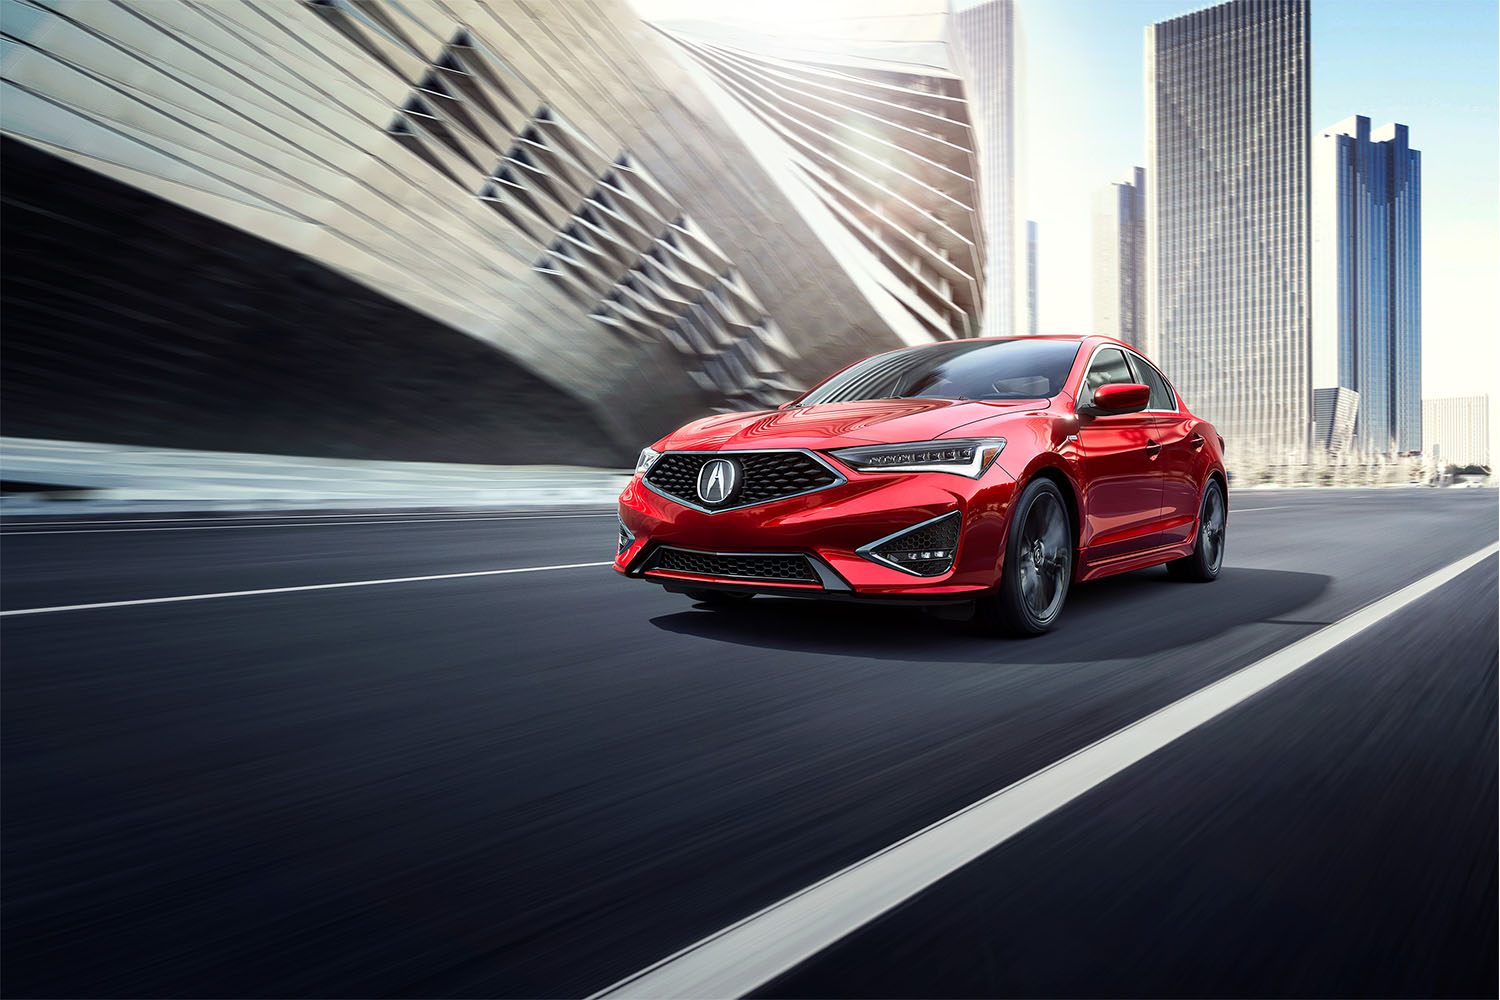 Lease a Acura in Scarsdale, NY